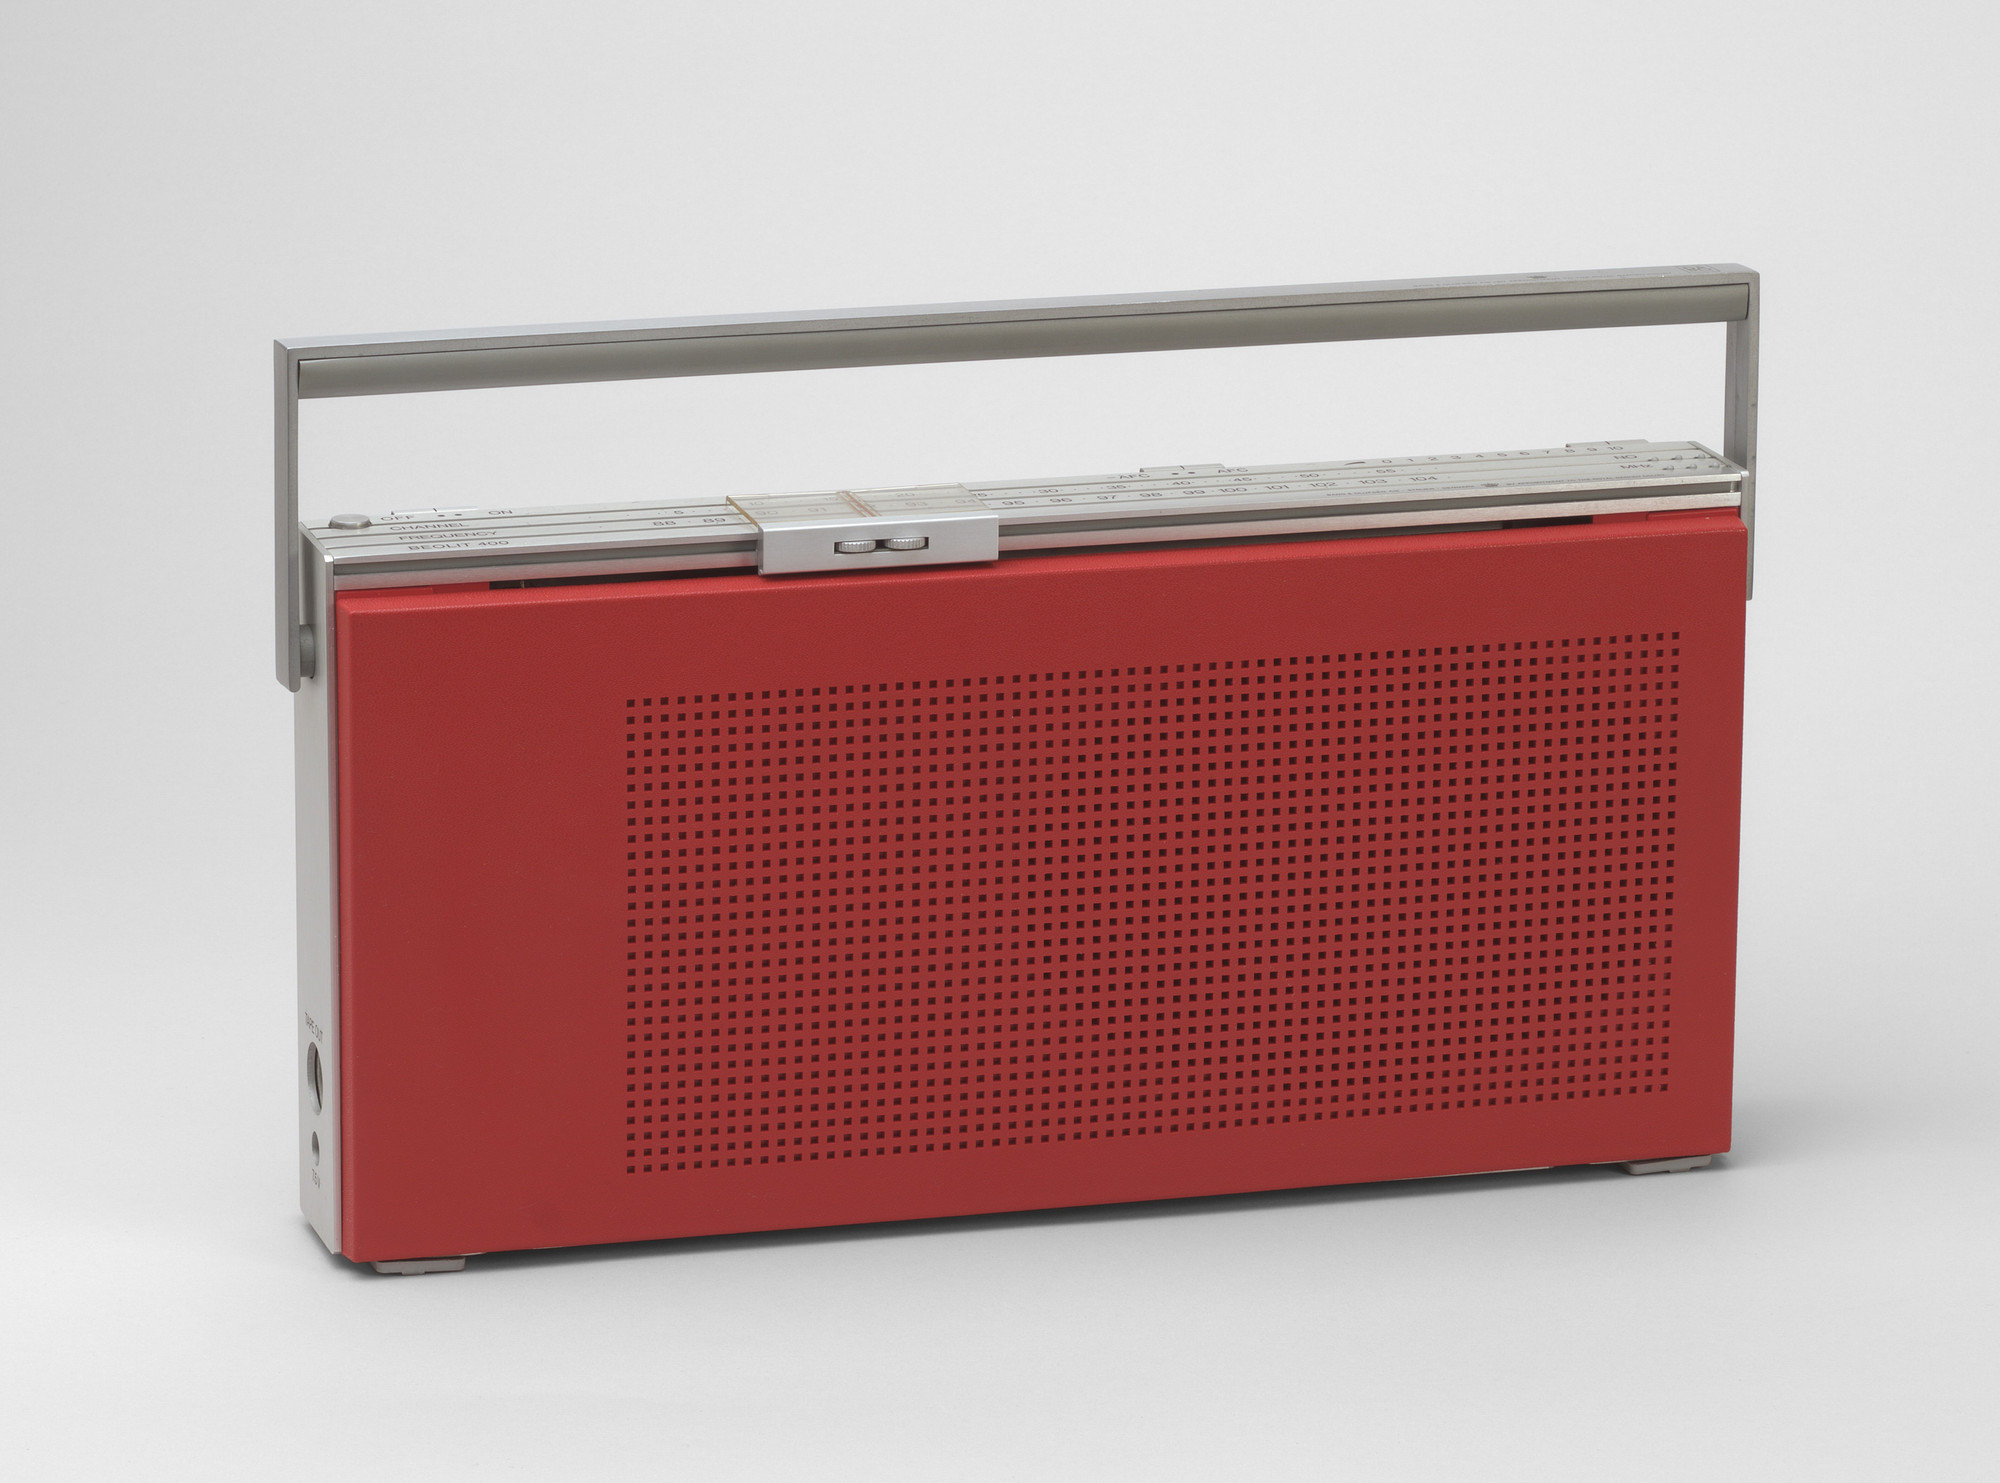 Jacob Jensen. Beolit 400 Portable Radio. 1971